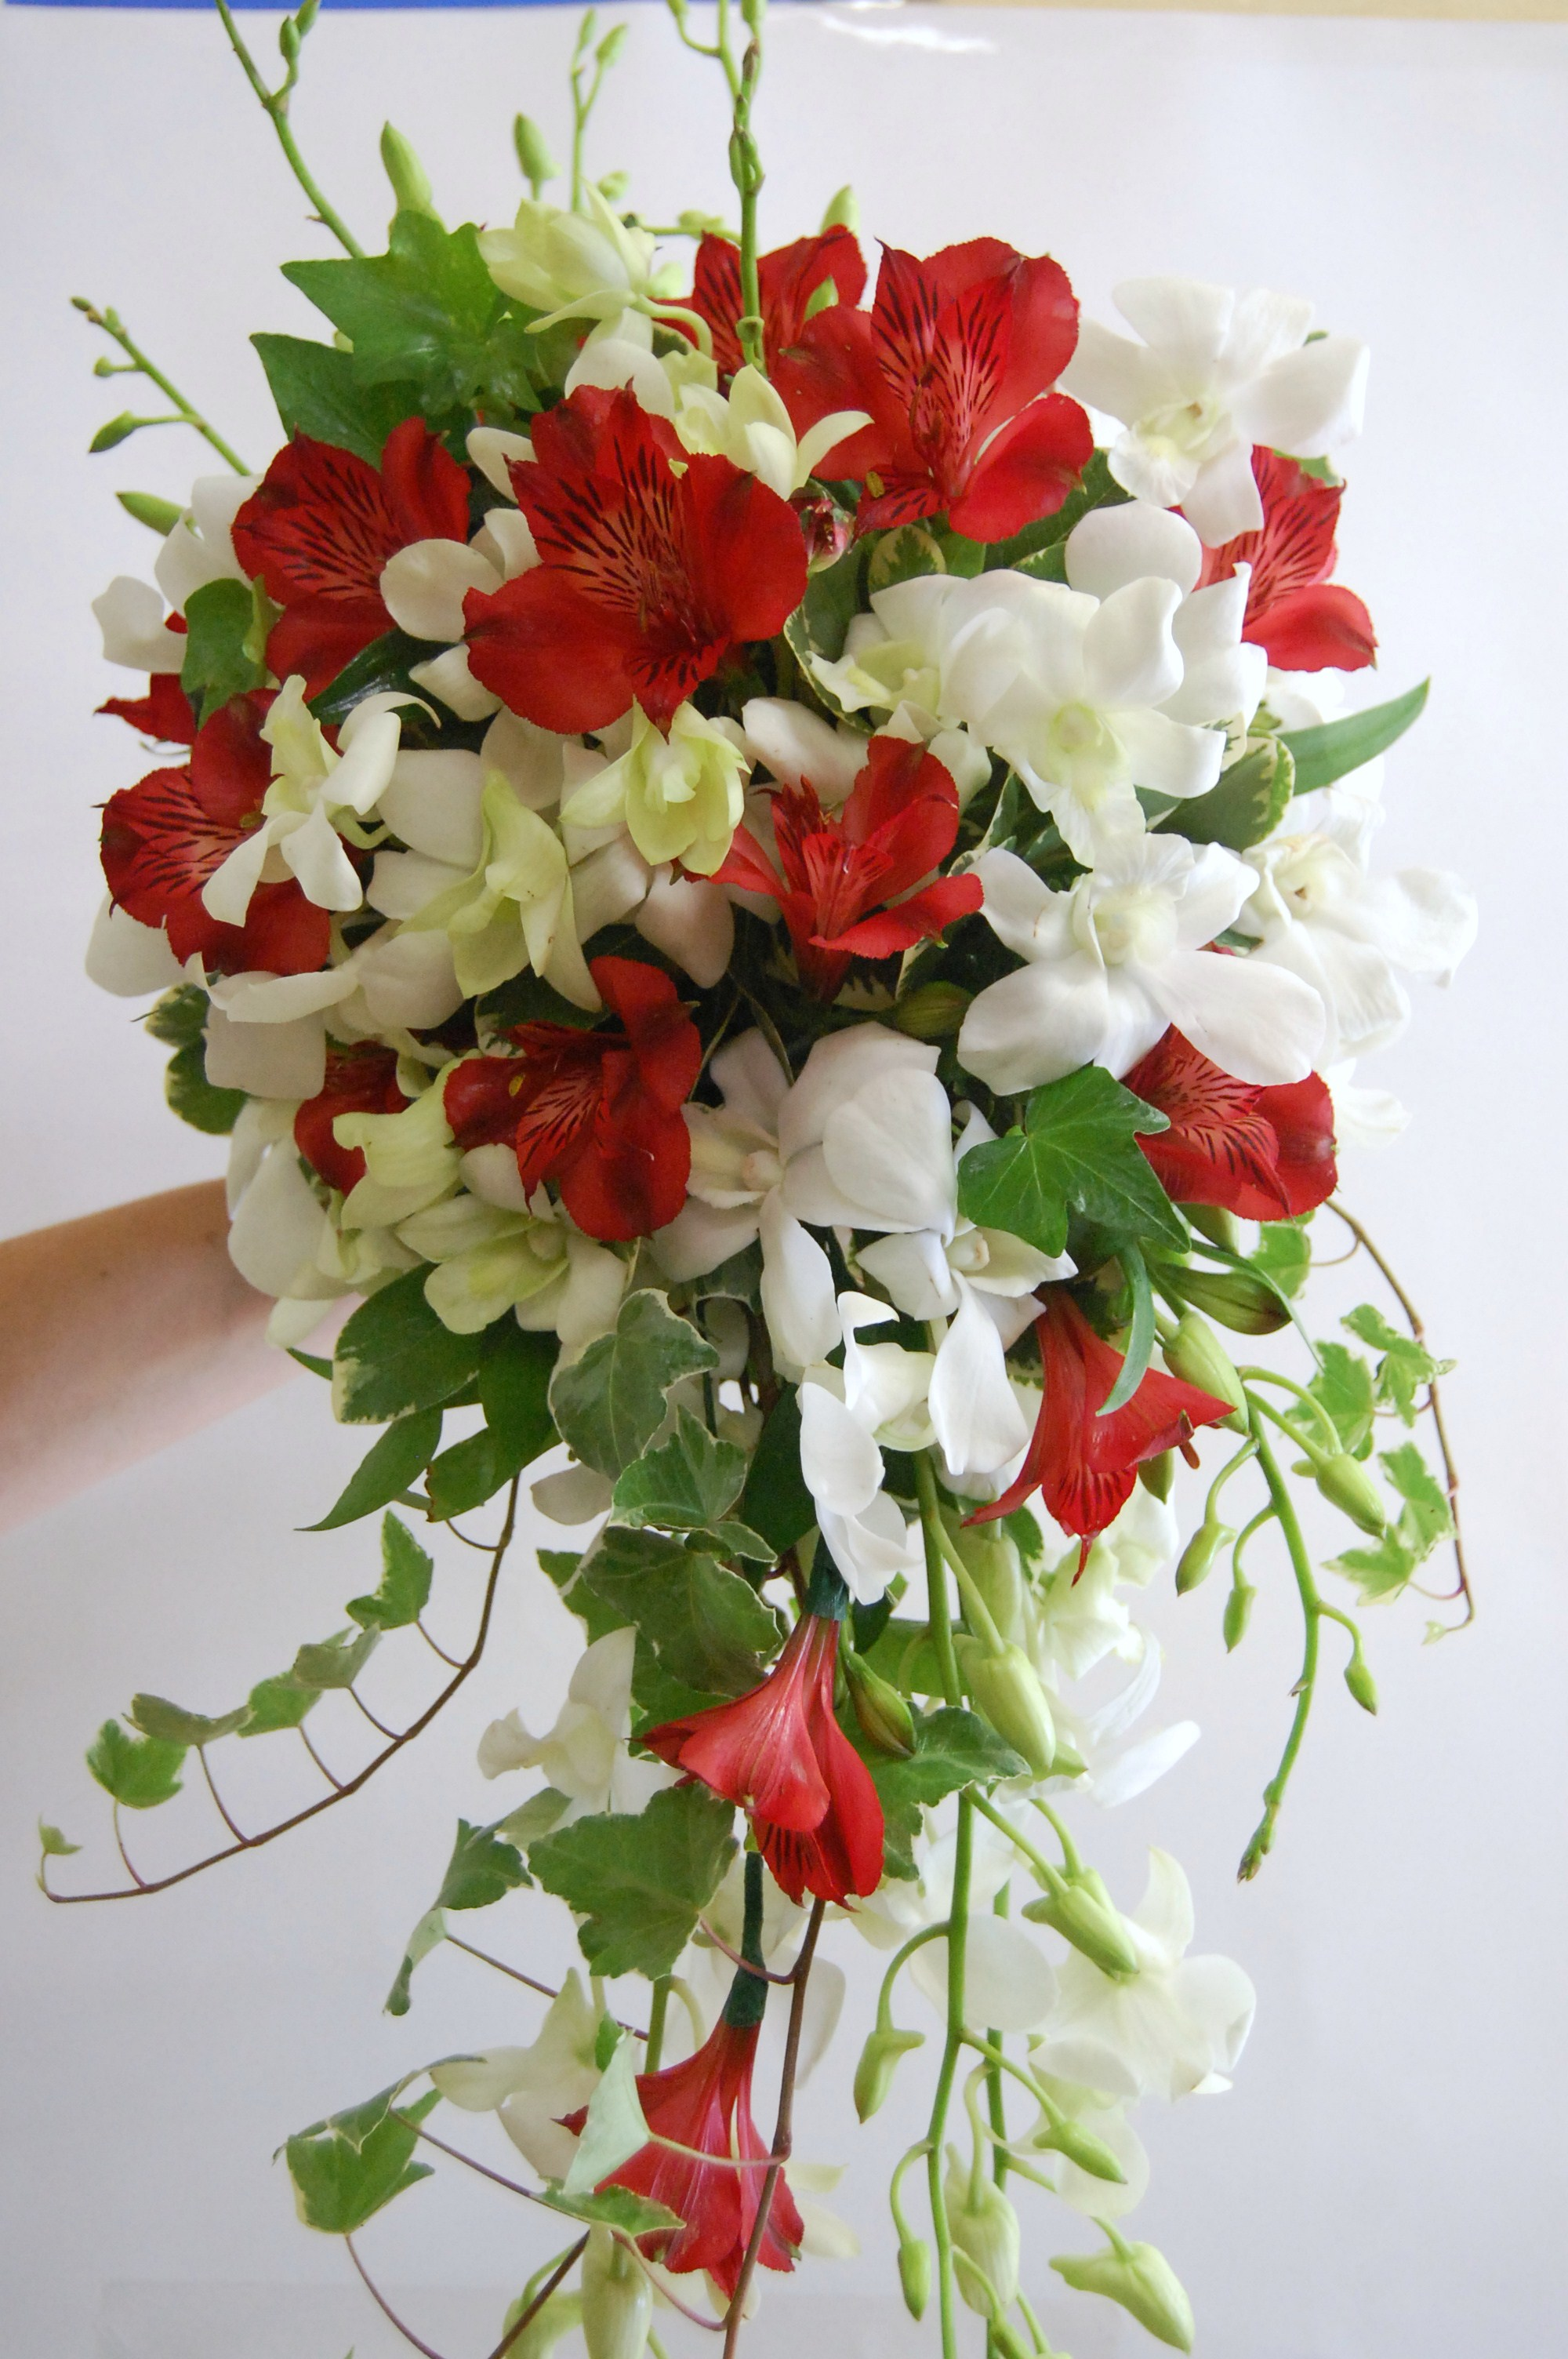 Cascade style with orchids and red alstroemeria